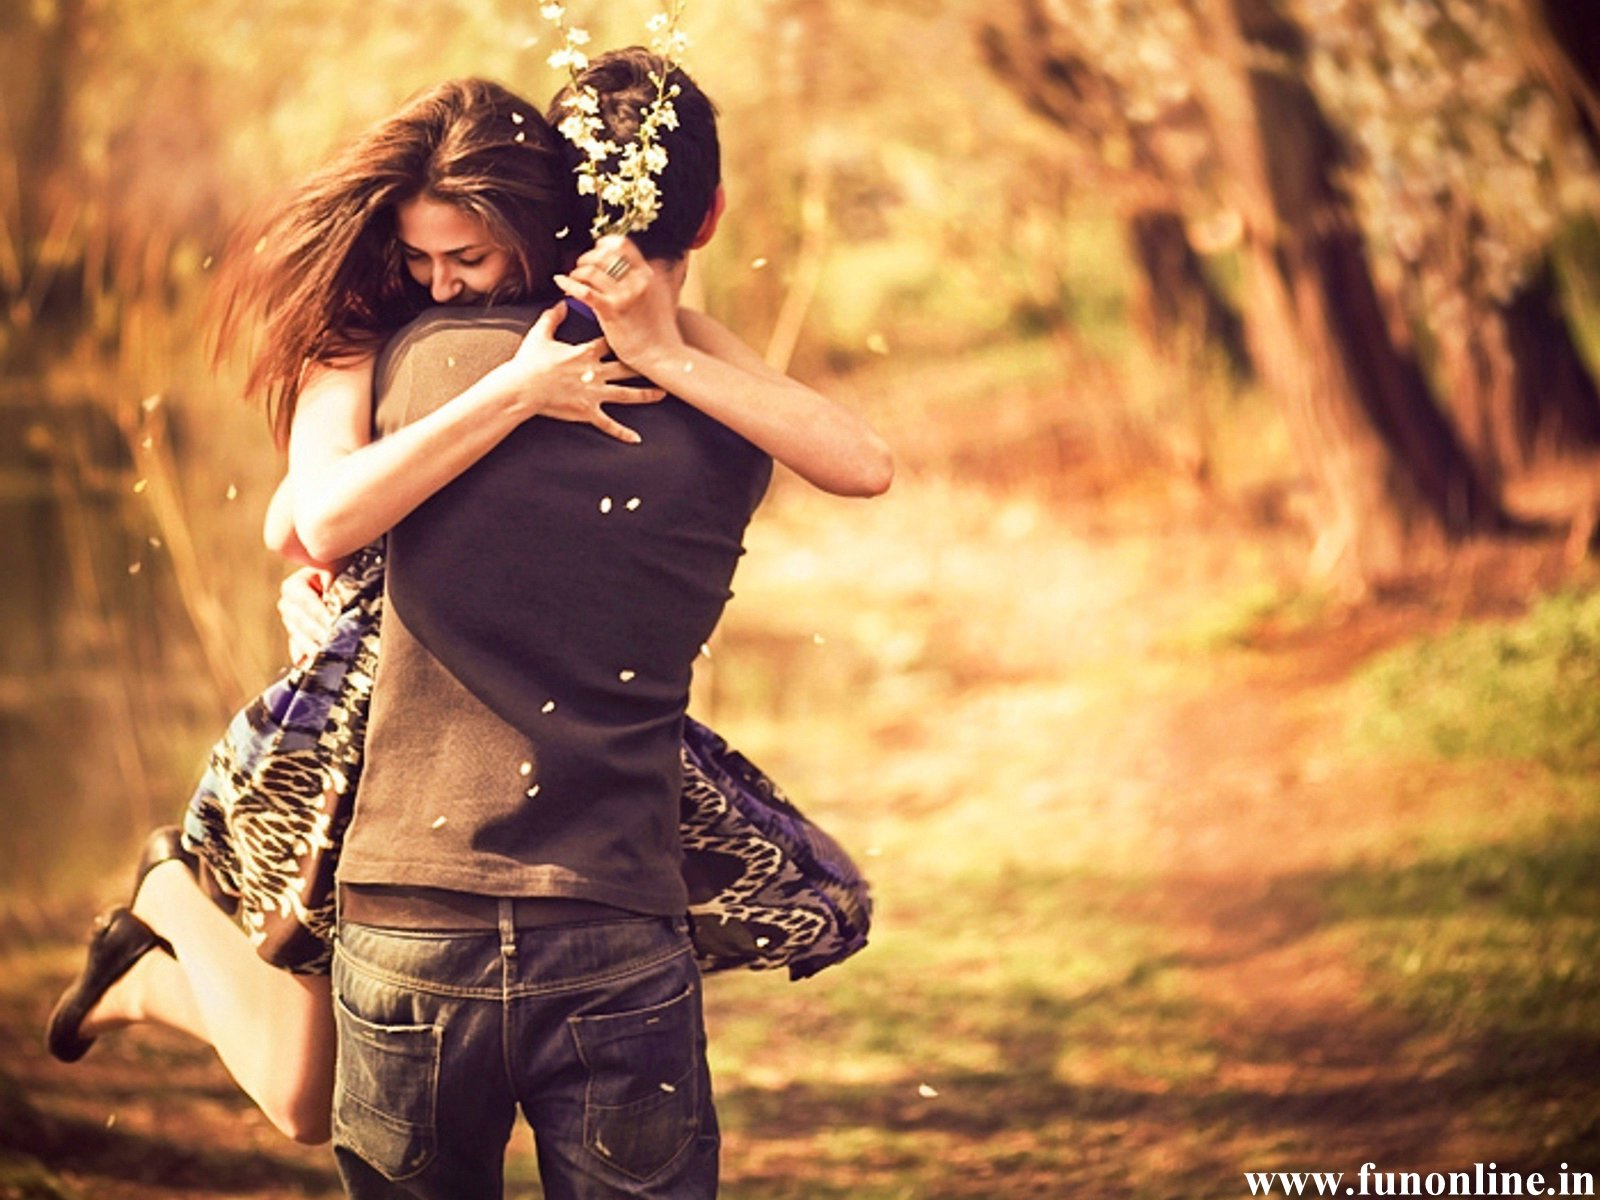 http://1.bp.blogspot.com/-F-hFFrtkGHs/UIaZVAXiWRI/AAAAAAAANts/r1OSbpglk5w/s1600/Pleasing-Couple-Love-Hug-Wallpaper.jpg